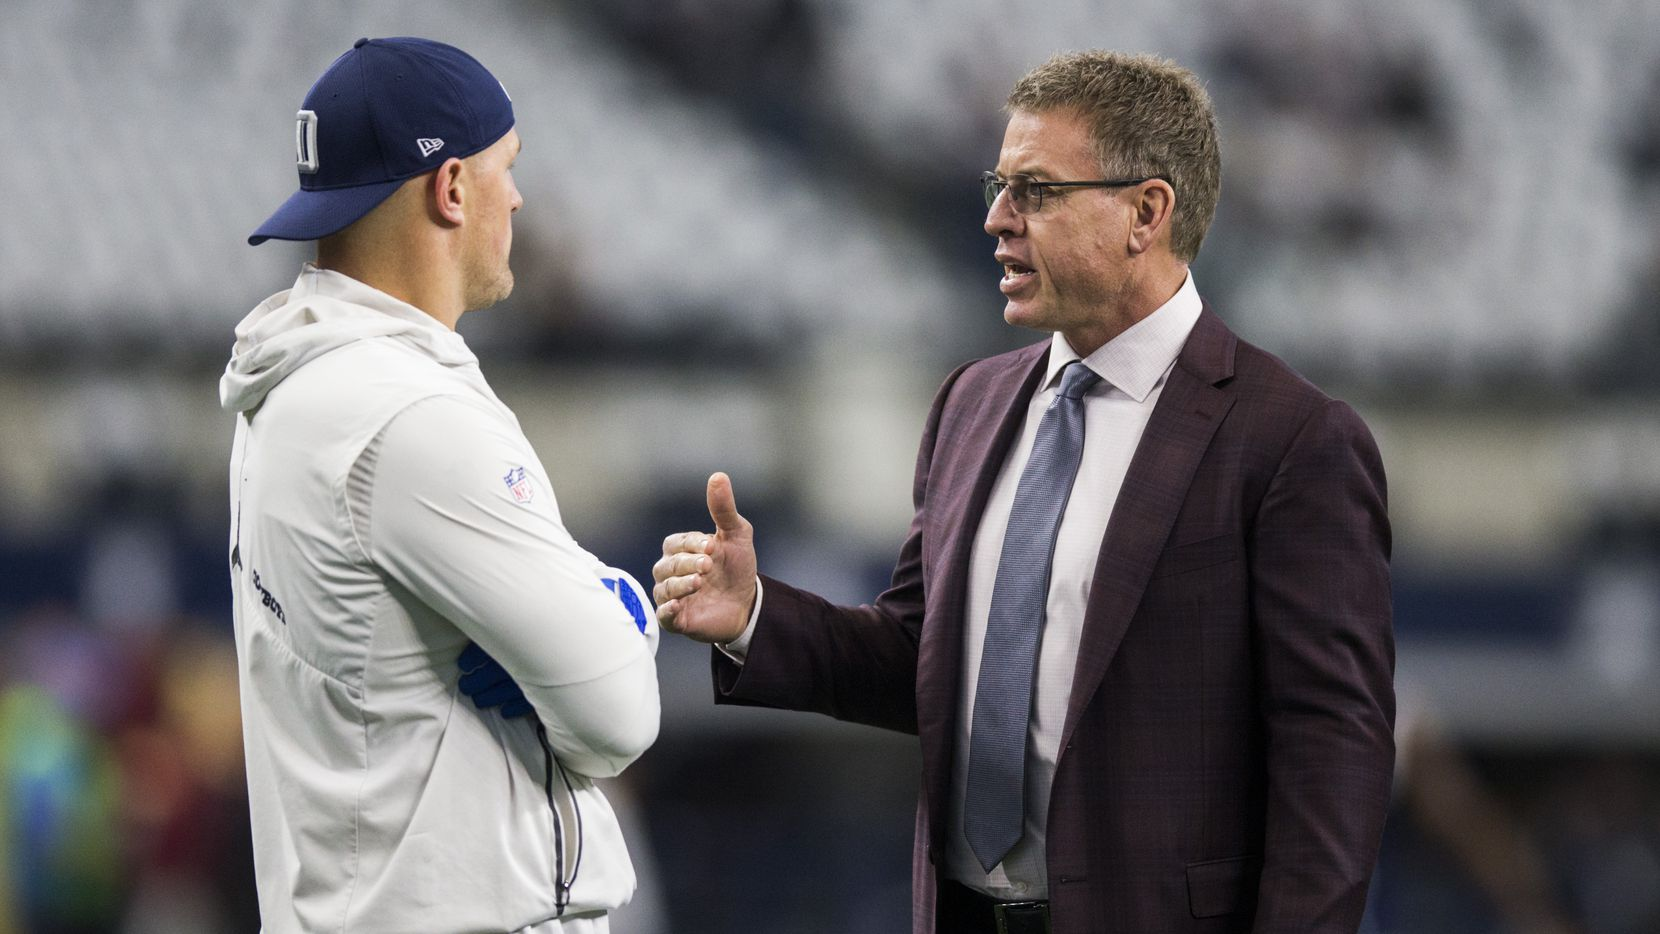 Dallas Cowboys tight end Jason Witten (82) talks with sports commentator and former Dallas Cowboys quarterback Troy Aikman before an NFL game between the Dallas Cowboys and the Washington Redskins on Sunday, December 29, 2019 at AT&T Stadium in Arlington, Texas.